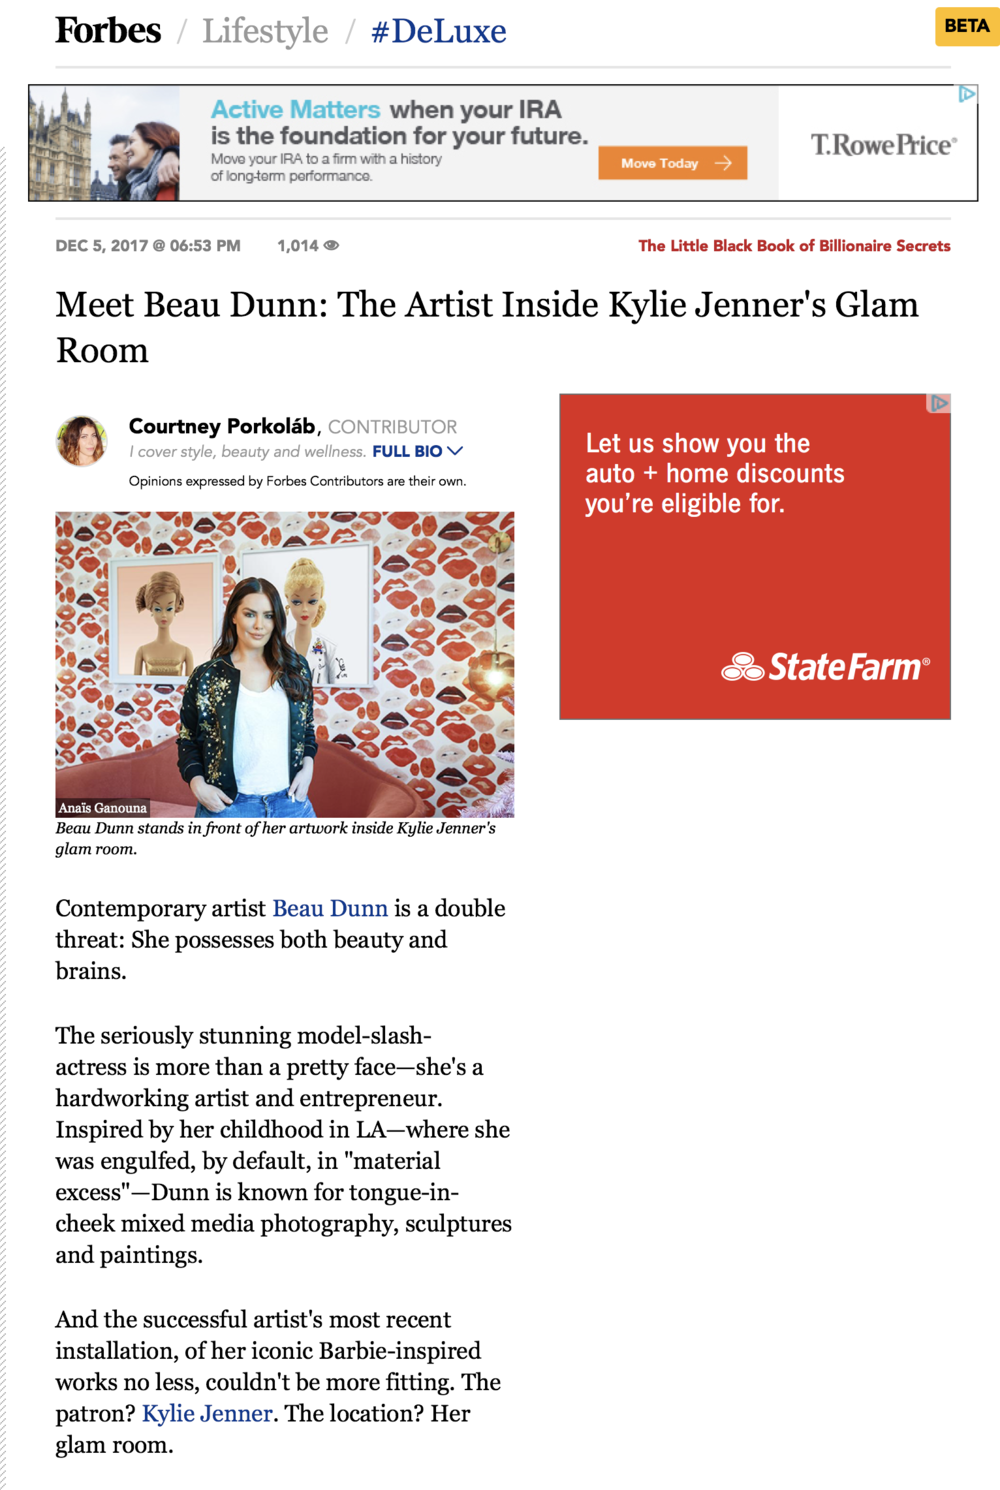 Meet Beau Dunn-The Artist Inside Kylie Jenner's Glam Room (2017-12-06 10-48-12).png